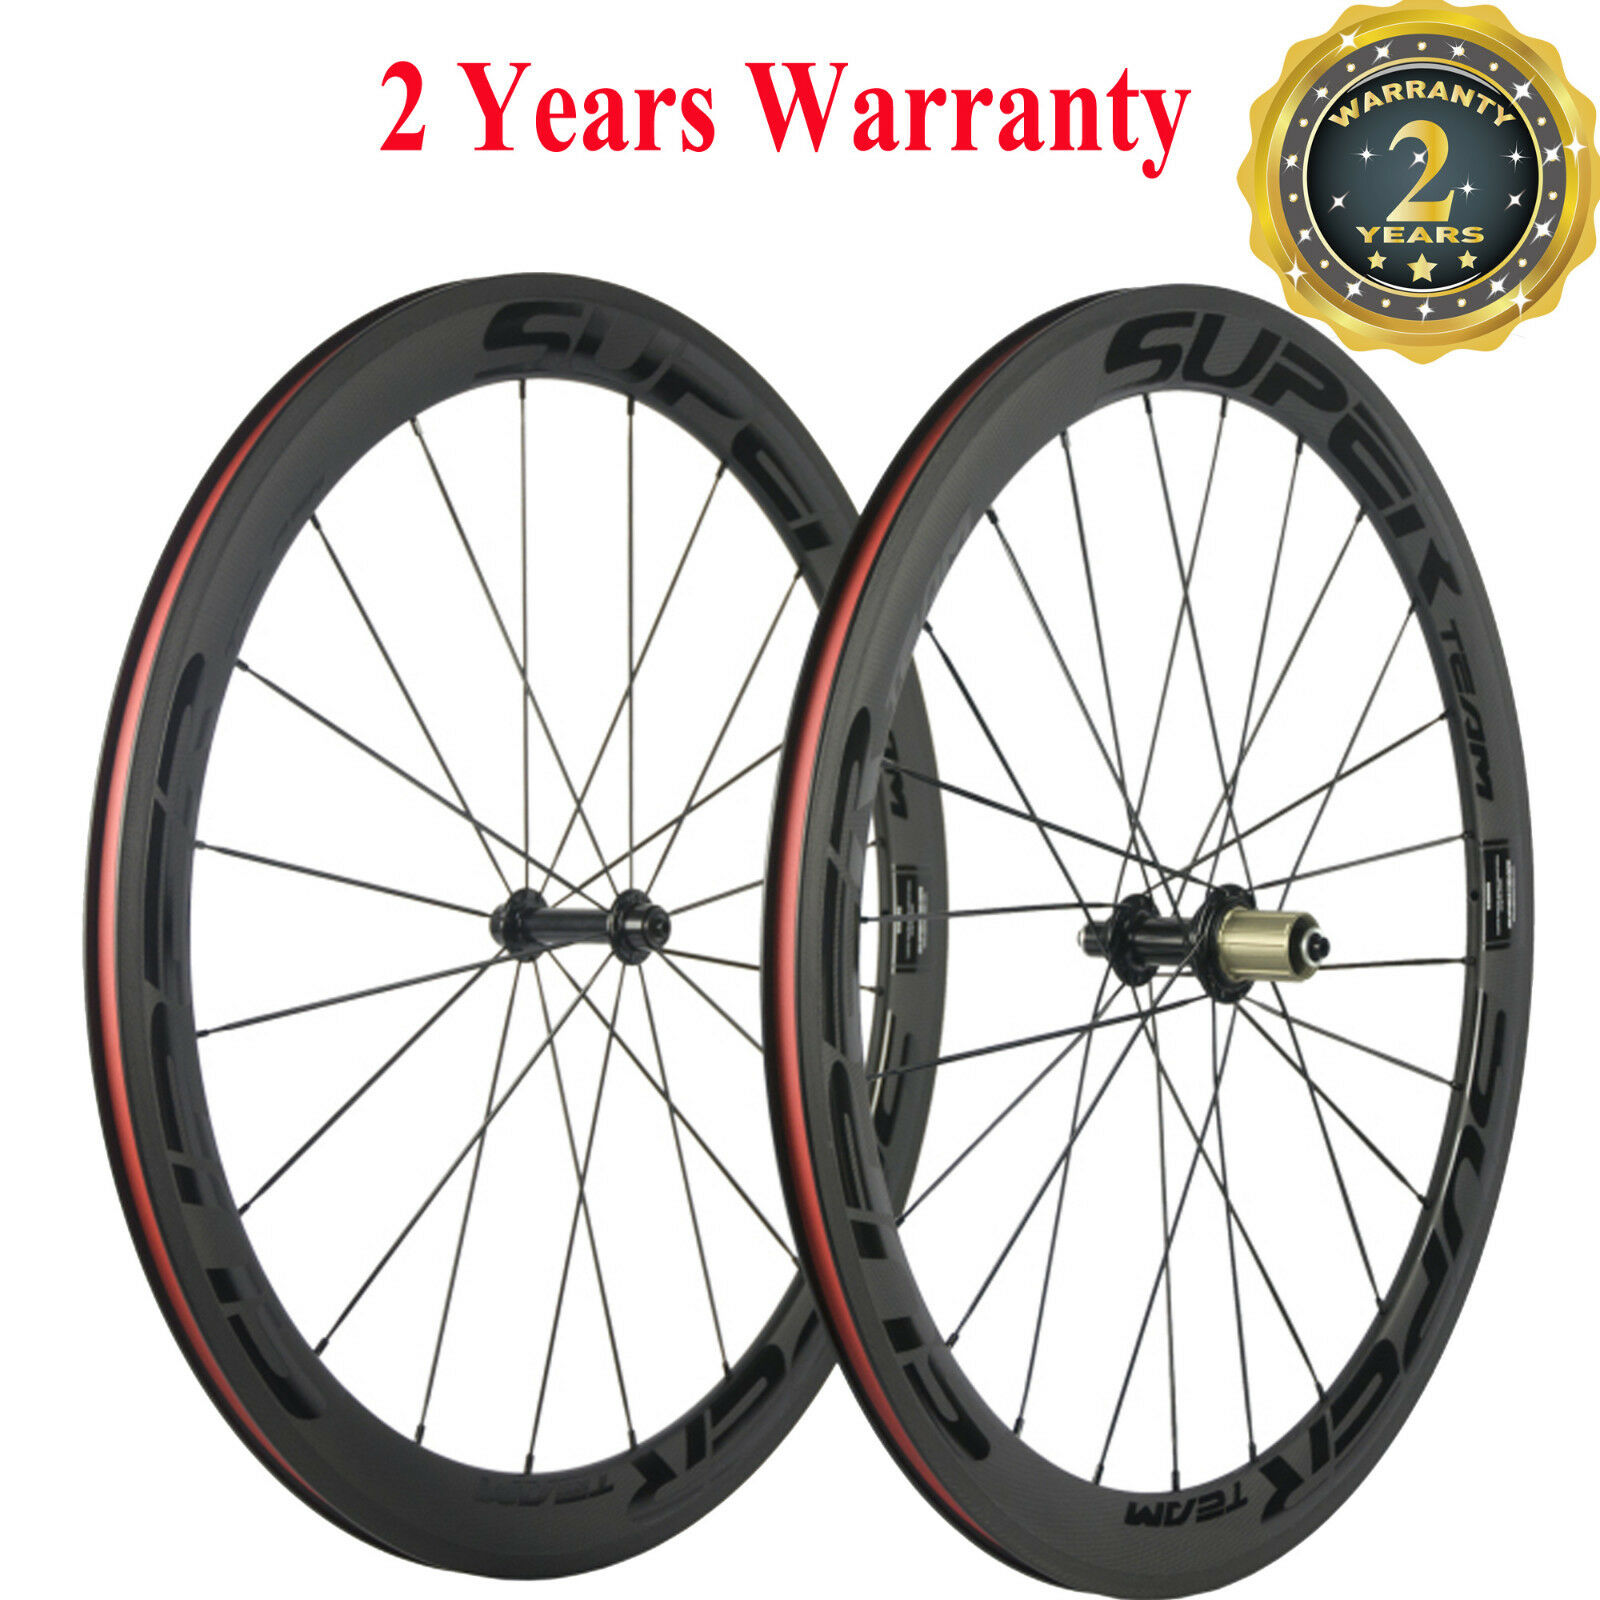 50mm Bike  Wheelset Carbon Clincher Wheels Road Bike Race Wheel 700C Bicycle R13  professional integrated online shopping mall